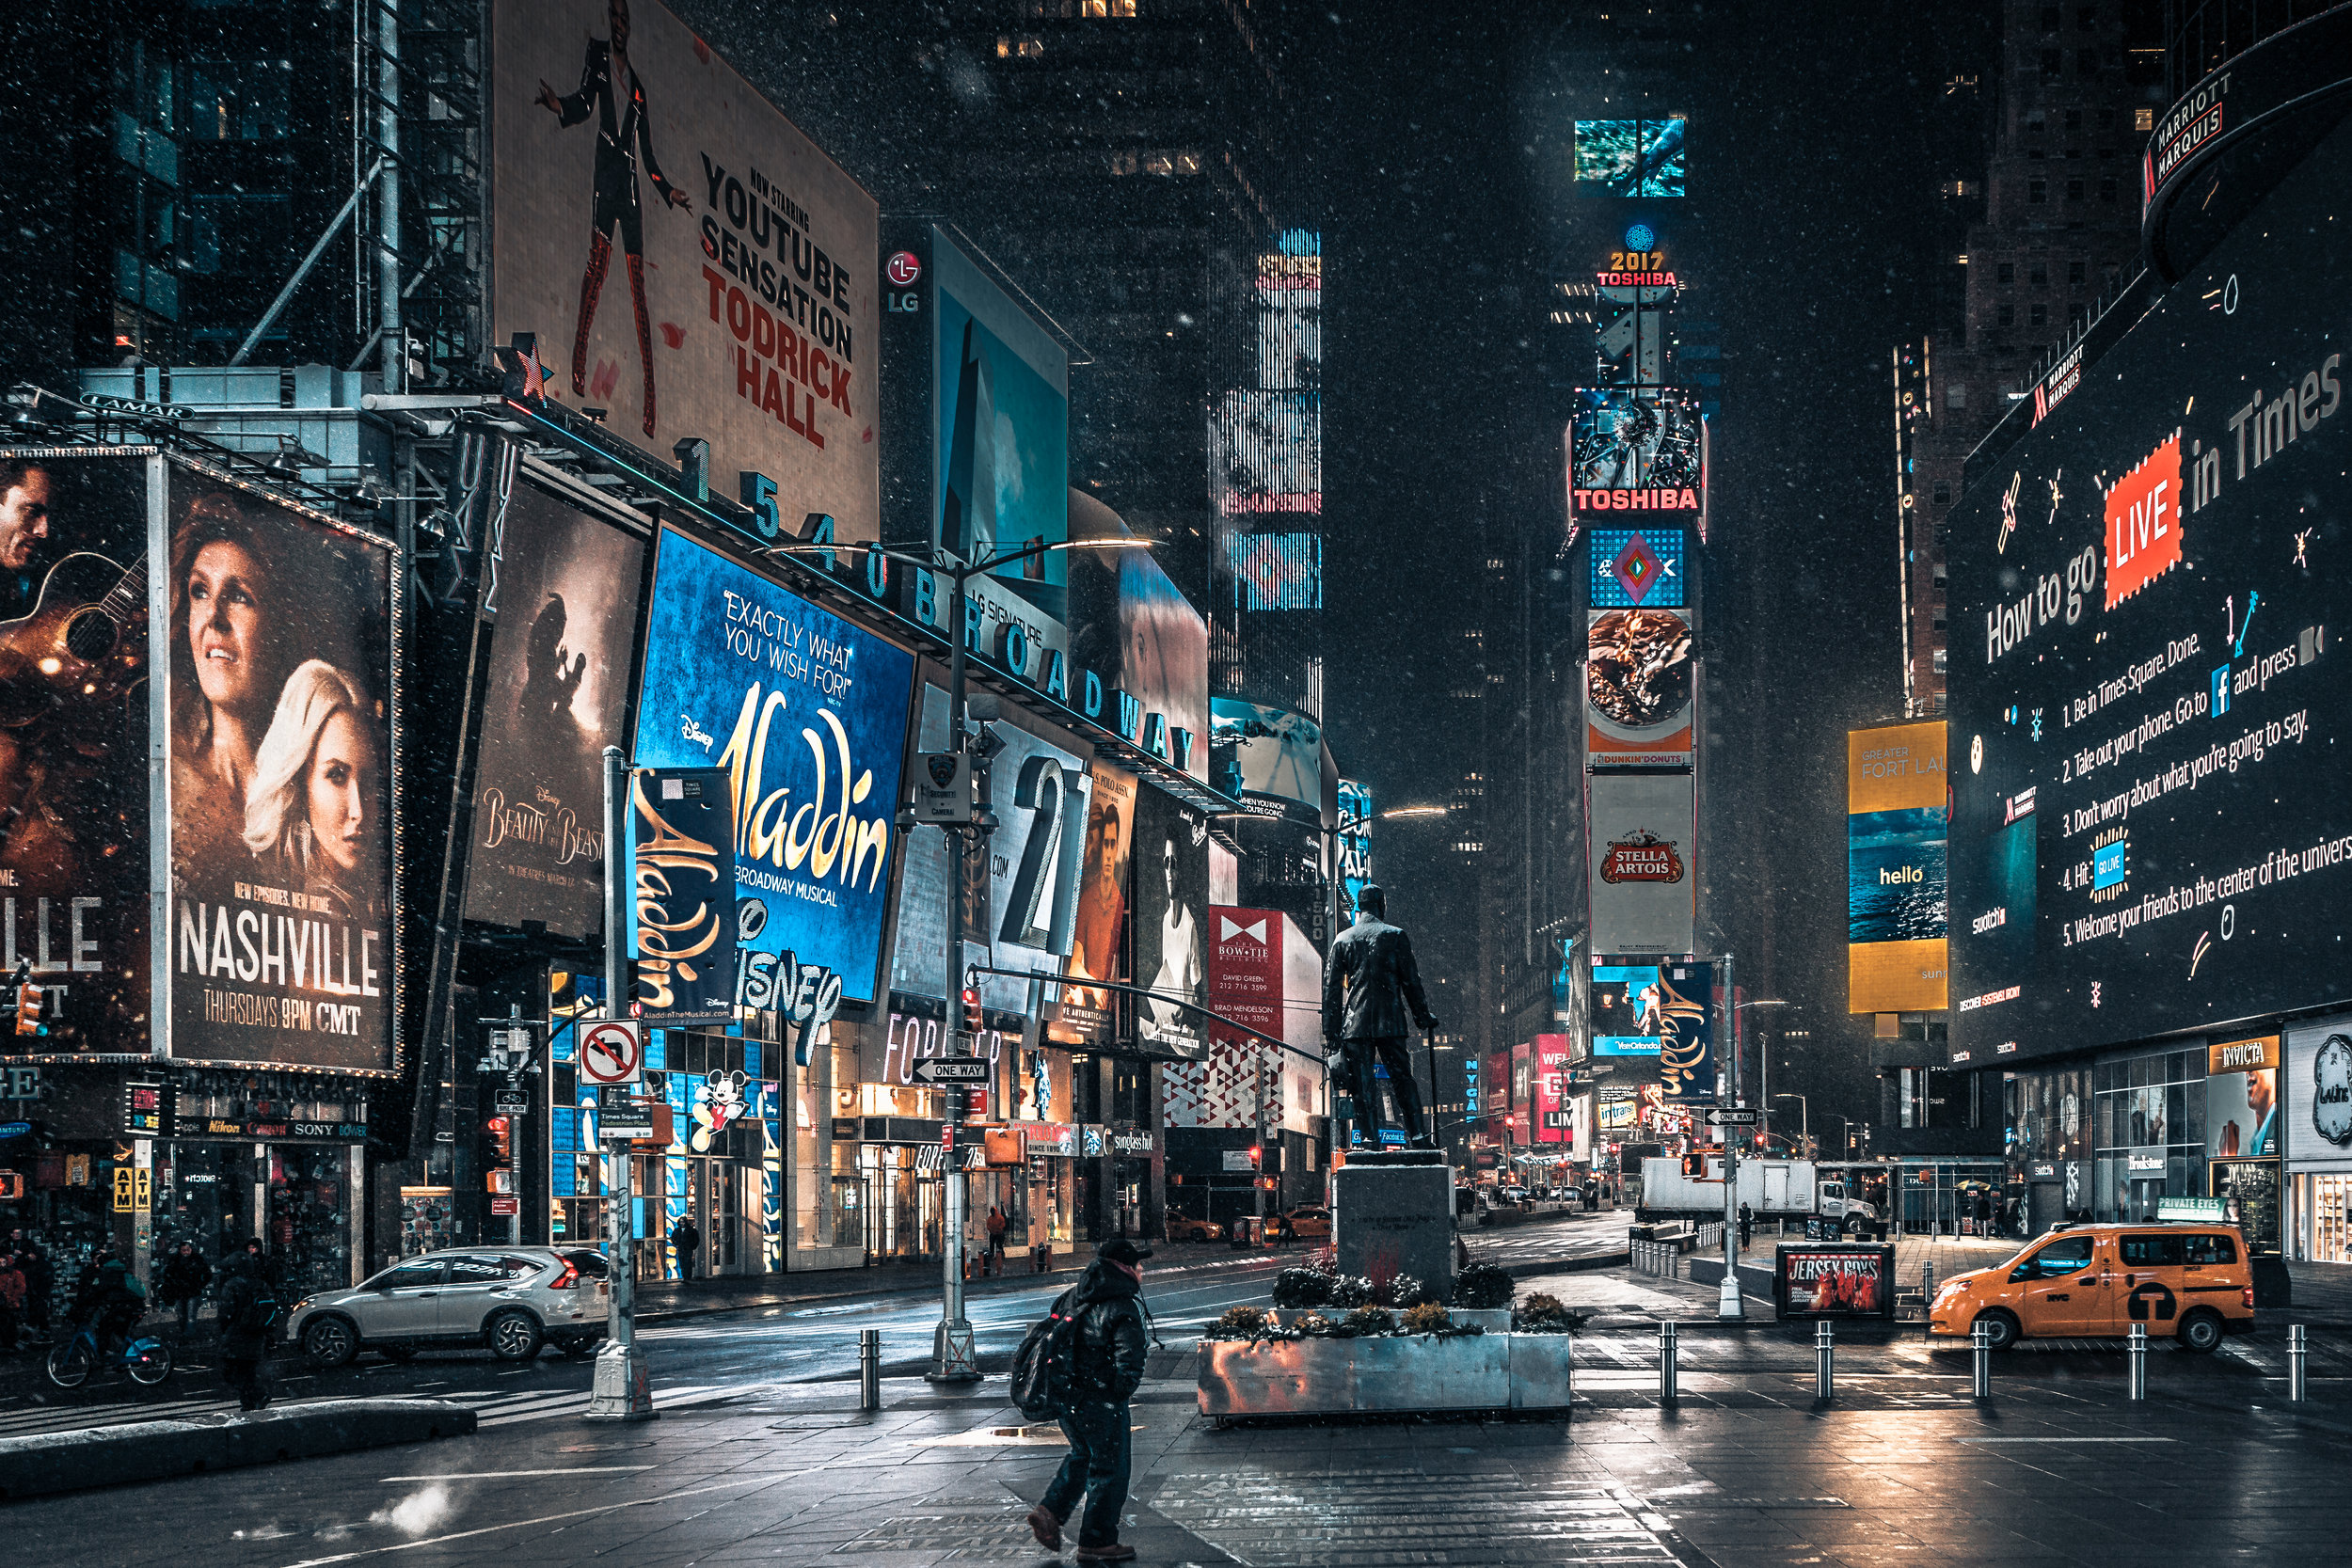 Snowfall beginning in Times Square. This was shot around 6AM; the emptiness of the area makes it a little eerie.